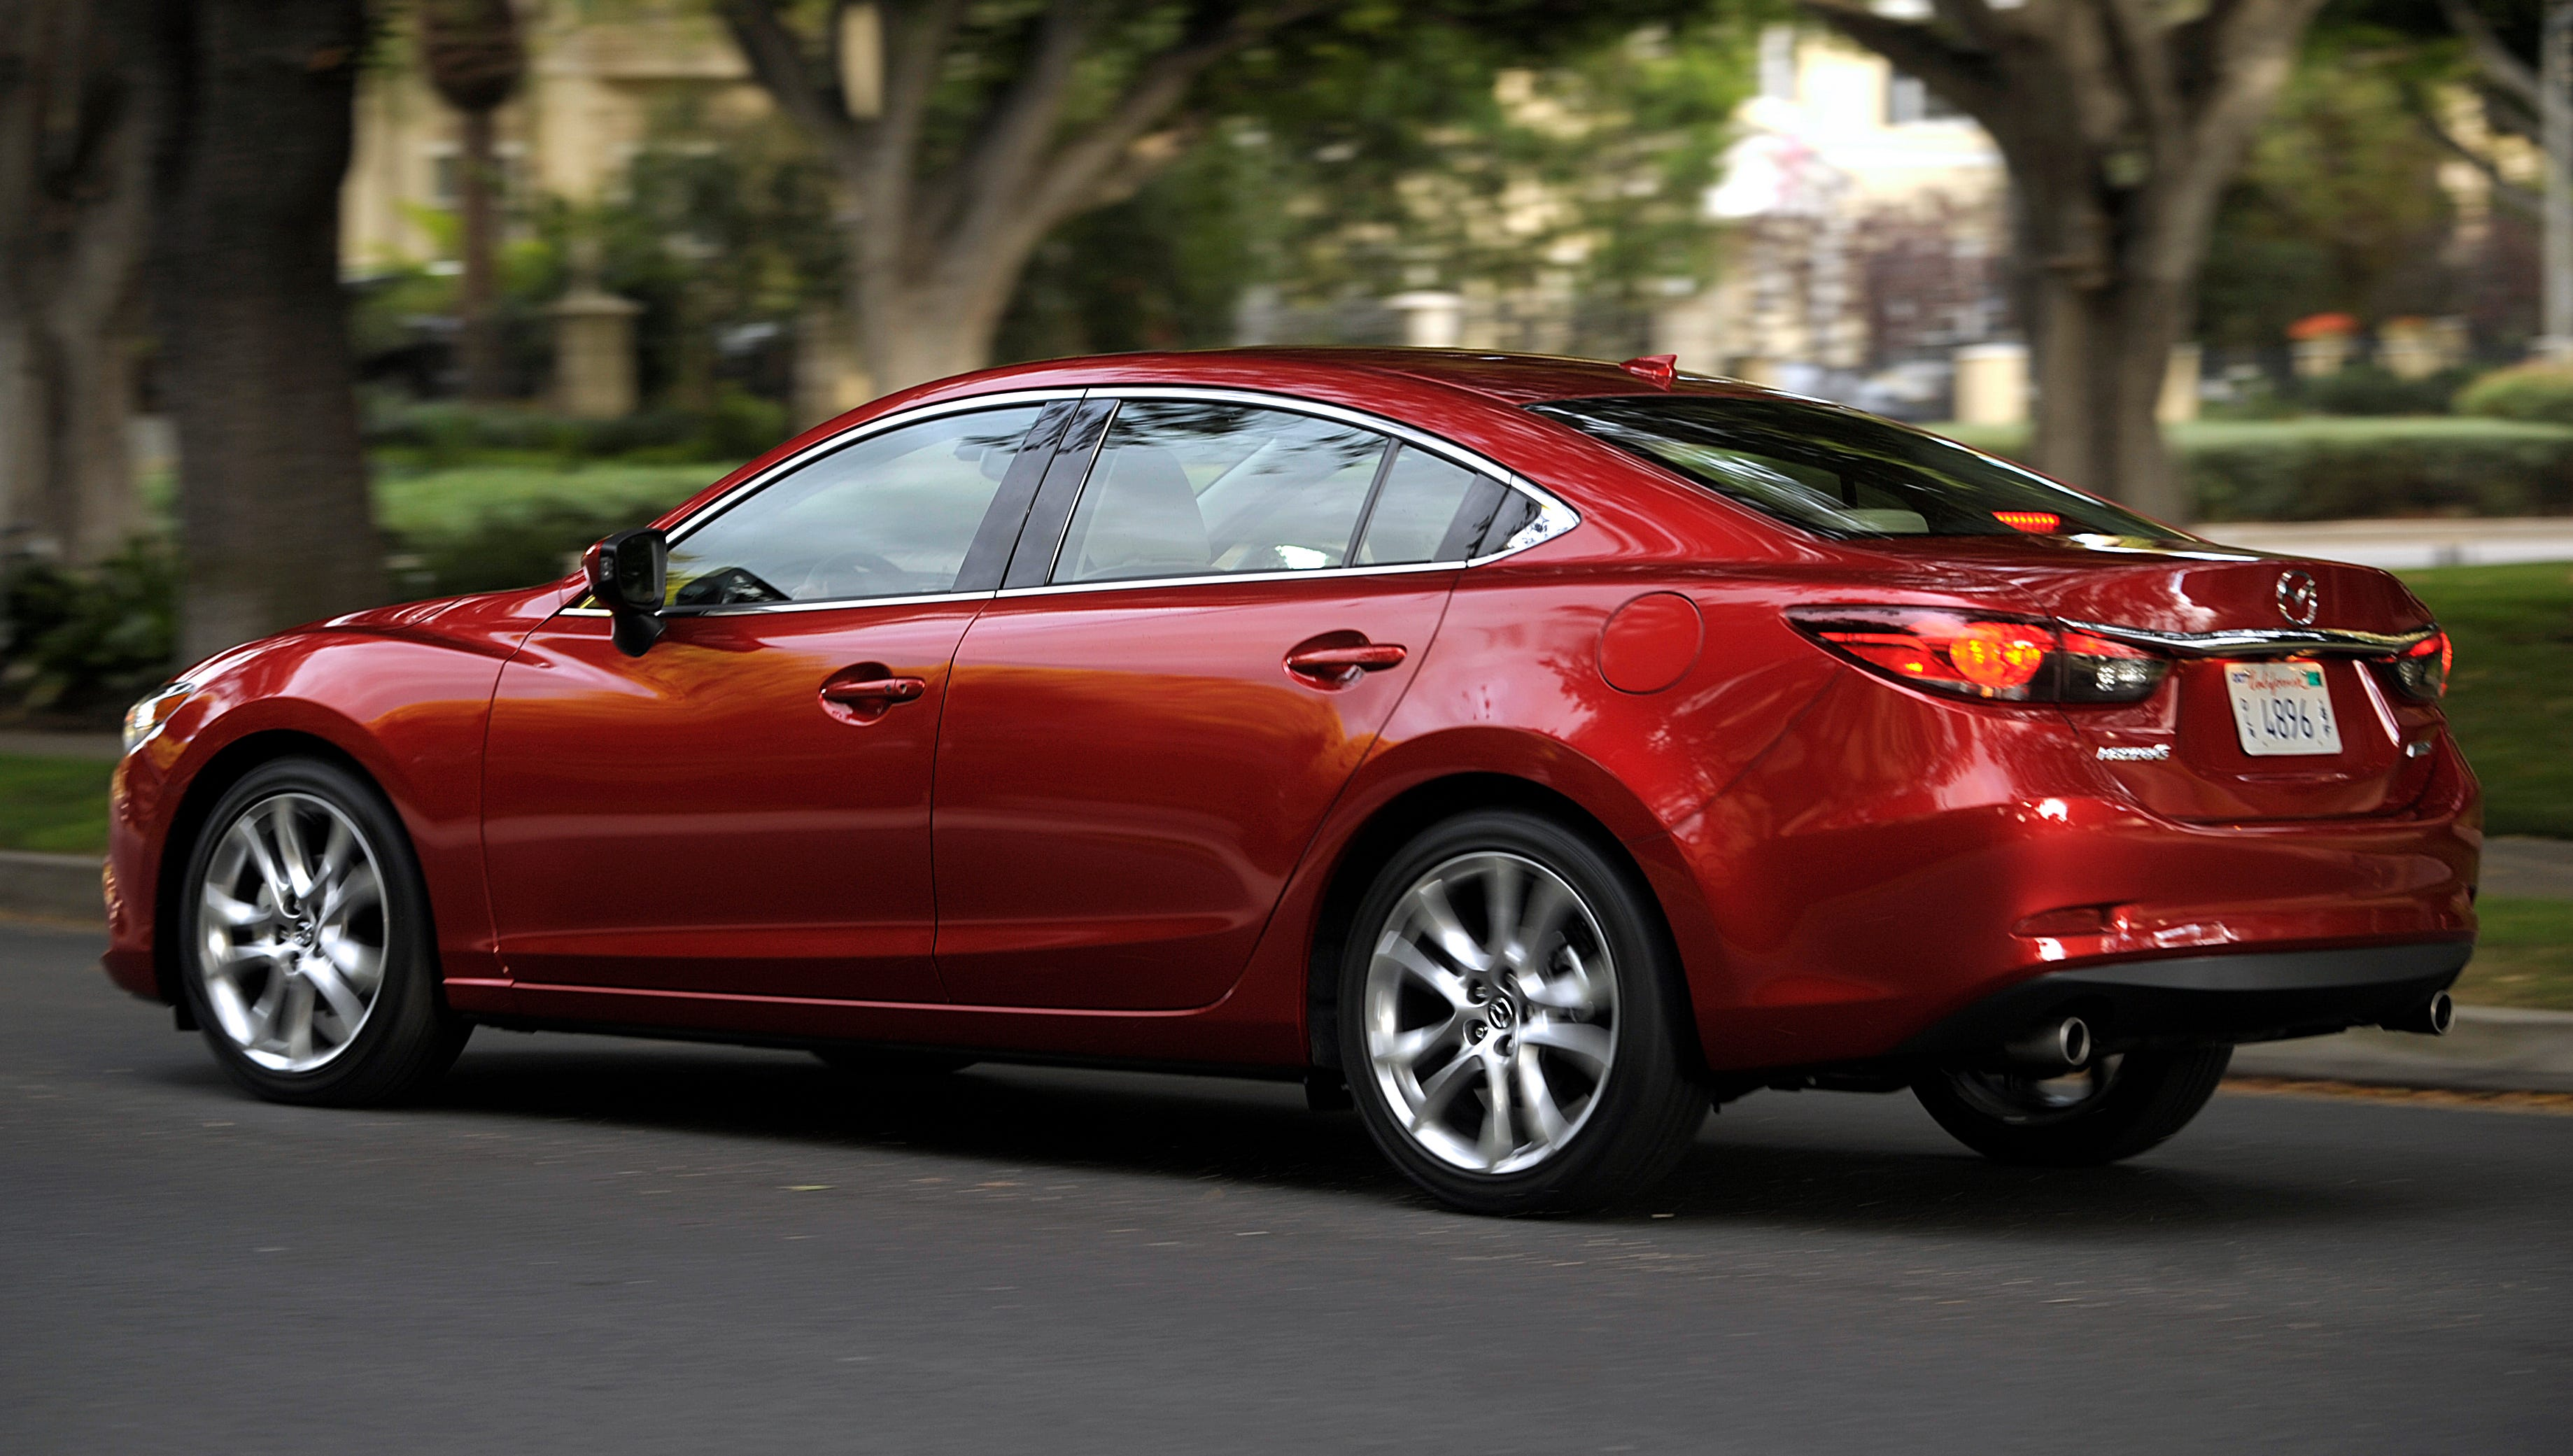 Unlike many midsize cars, all Mazda6 models have alloy wheels, even the very base model -- no steel wheels with tacky plastic wheel covers.